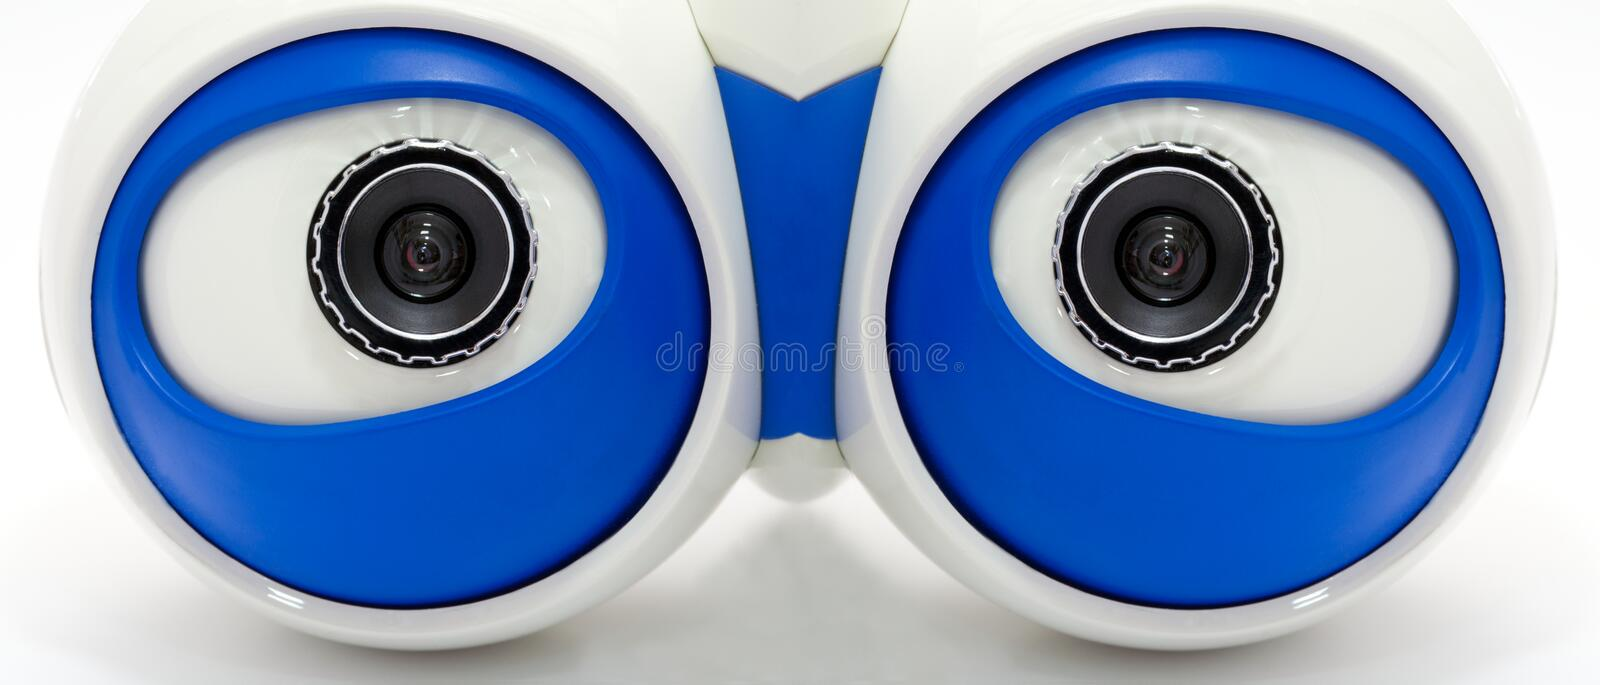 Download Eyes Of The Robot. A White Robotic Eyes Looking Stock Image - Image: 18444333